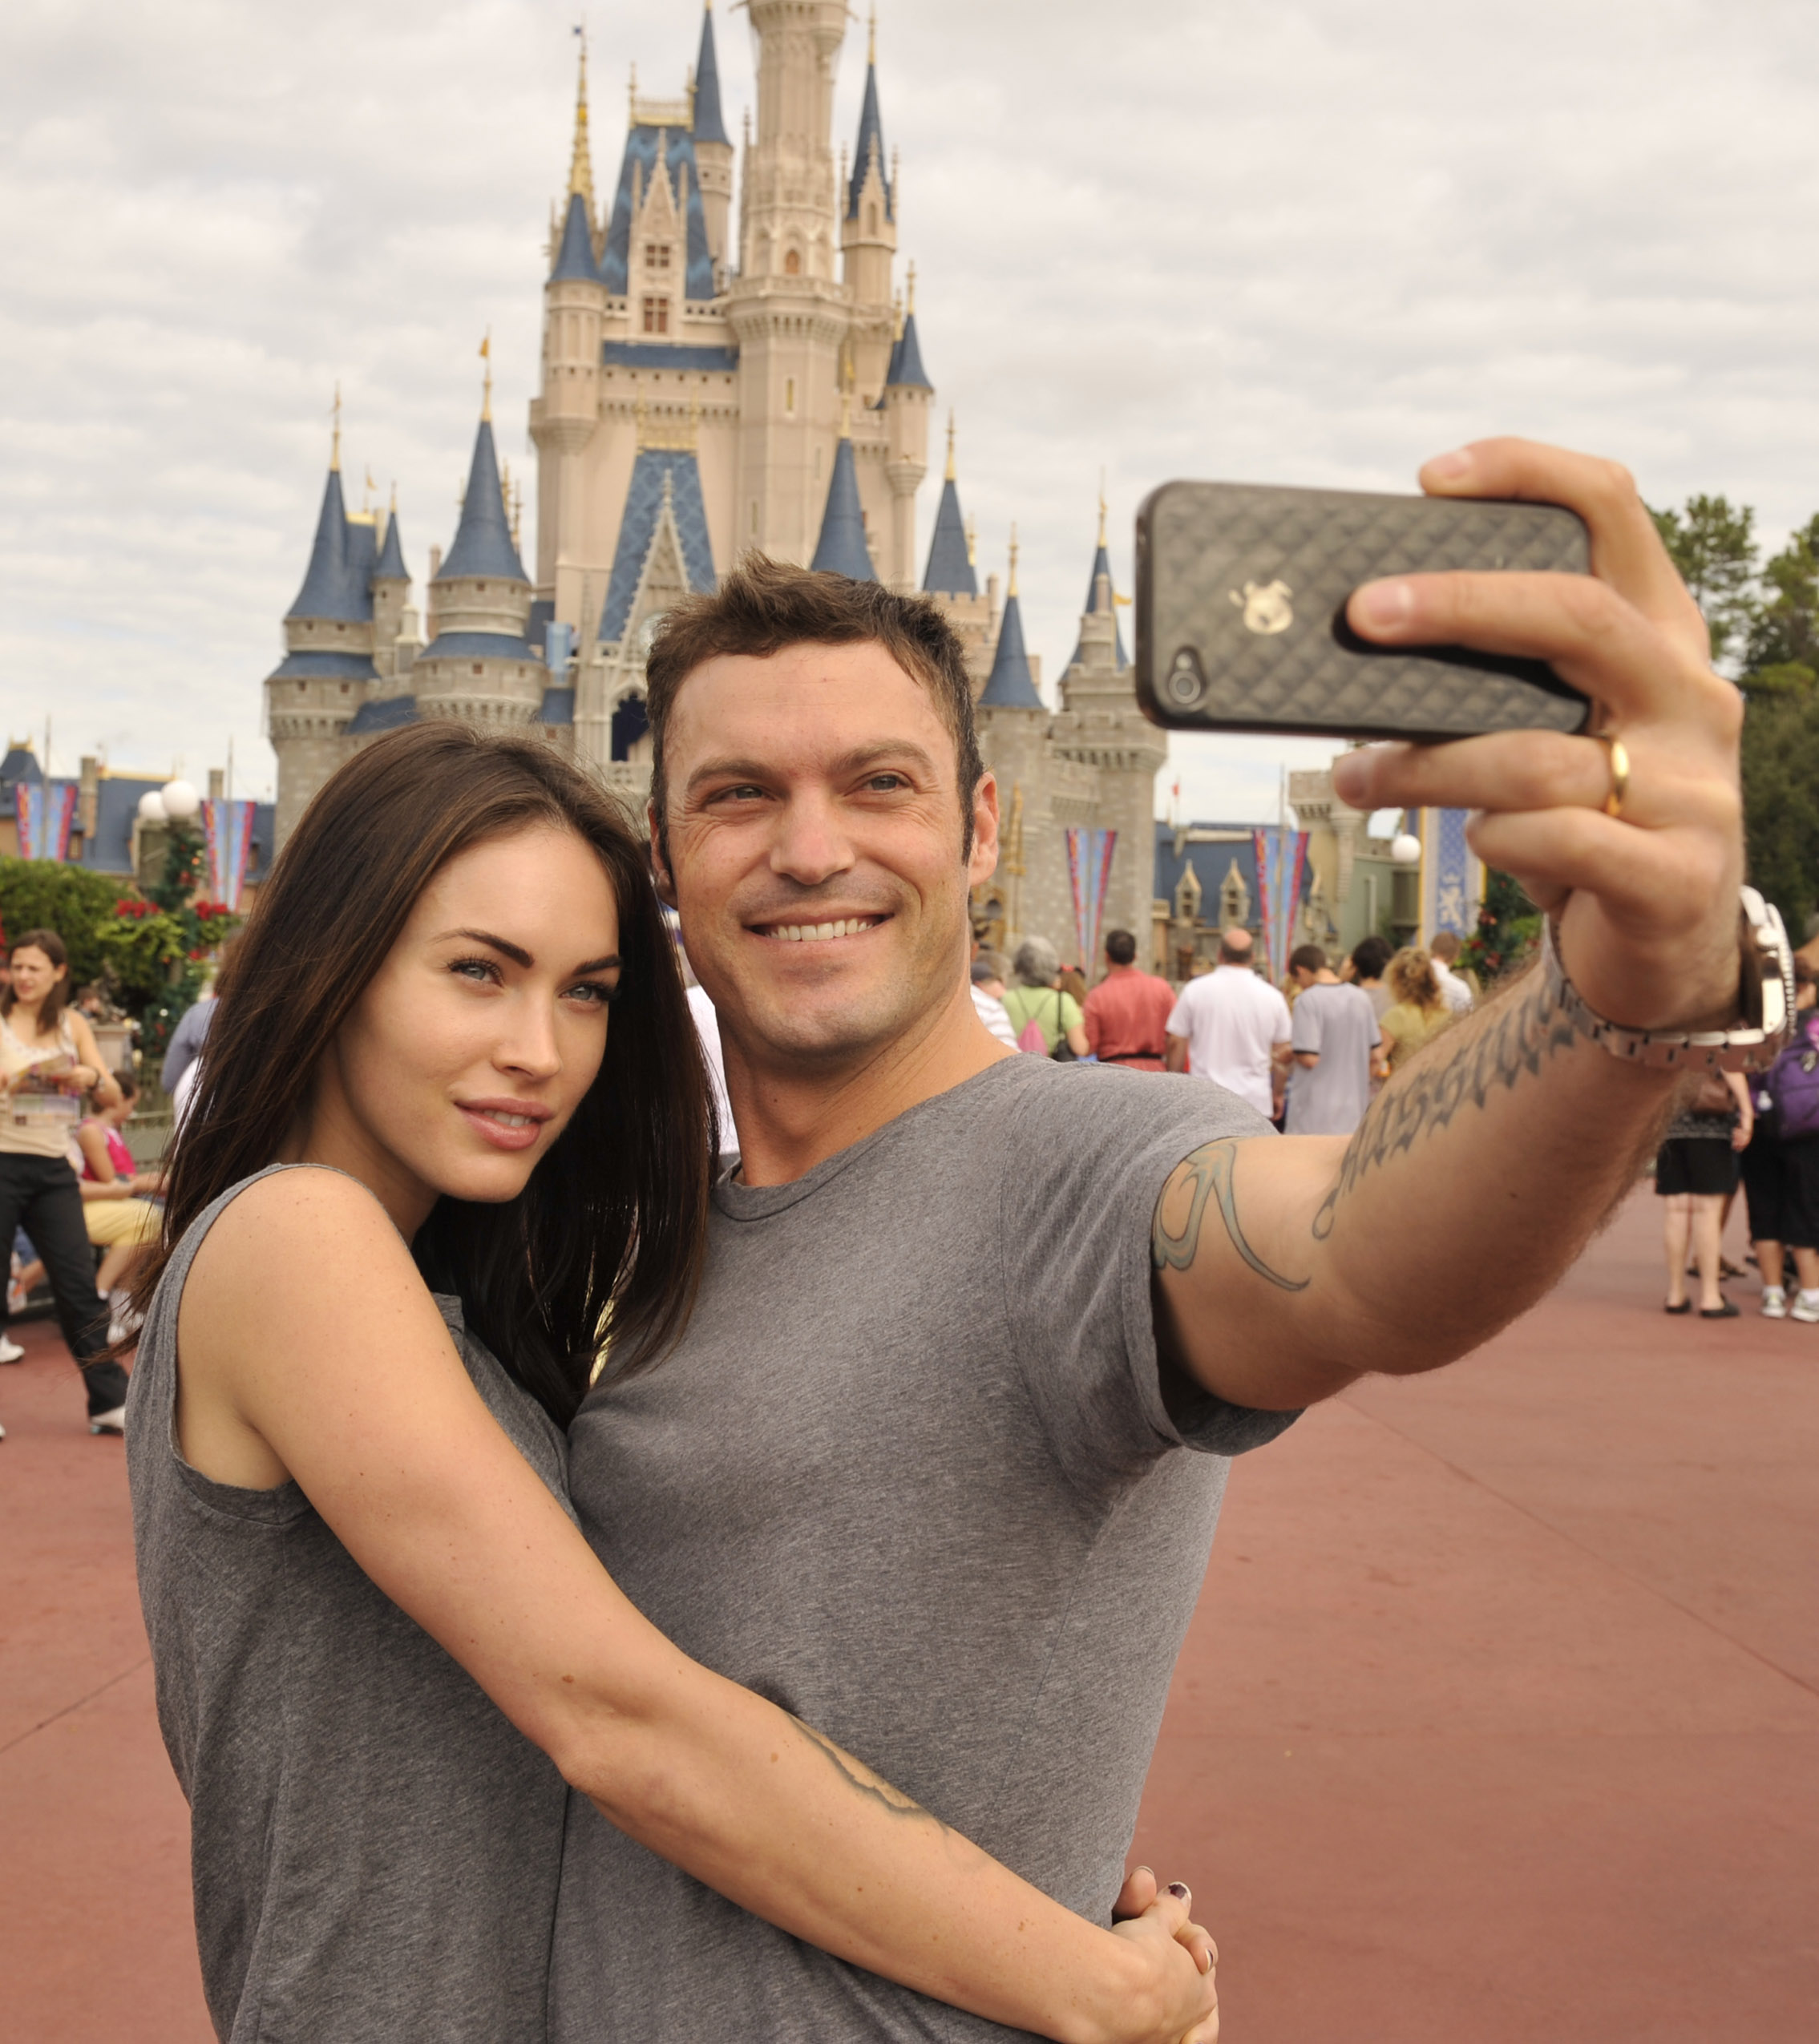 Megan Fox And Brian Austin Green At The Magic Kingdom